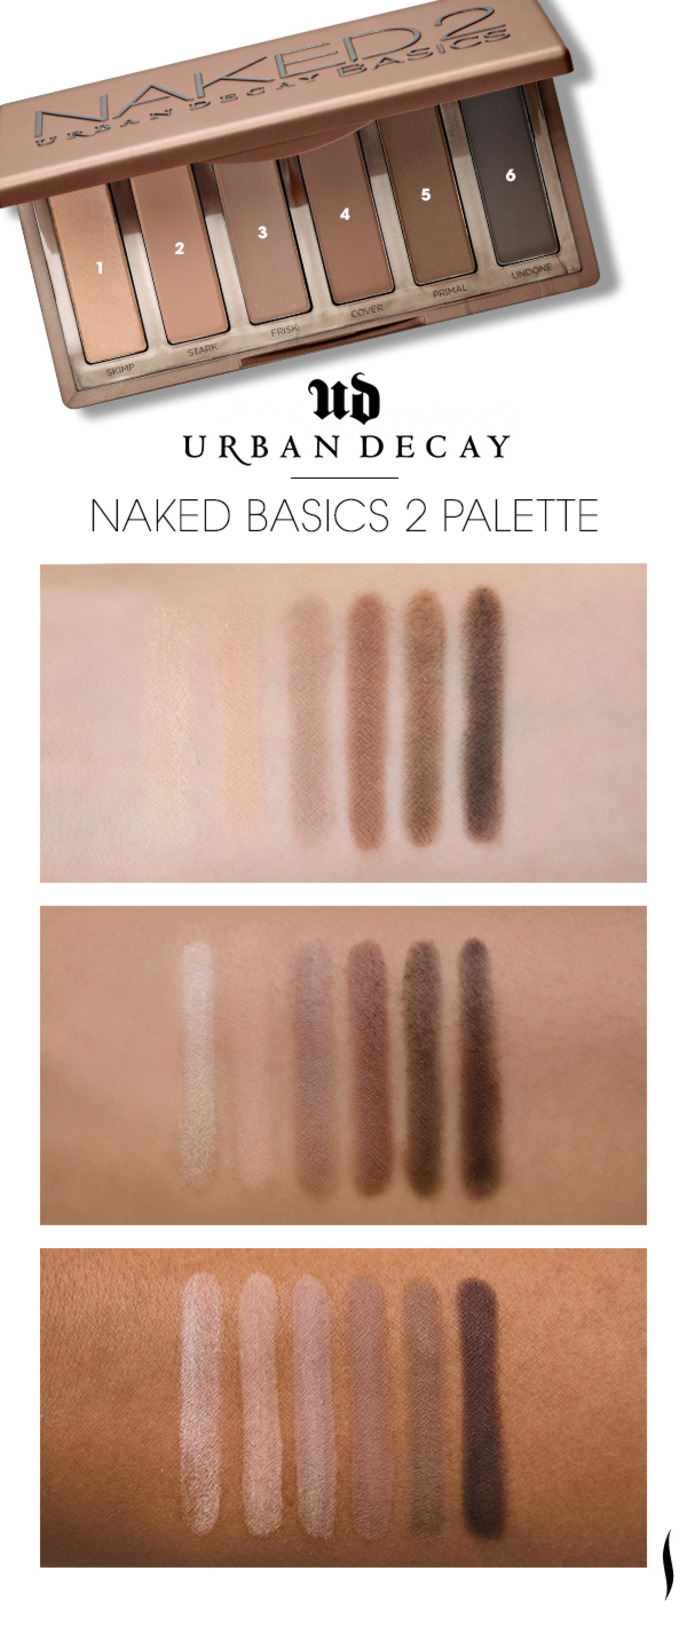 THIS PALETTE IS ANYTHING BUT BASIC